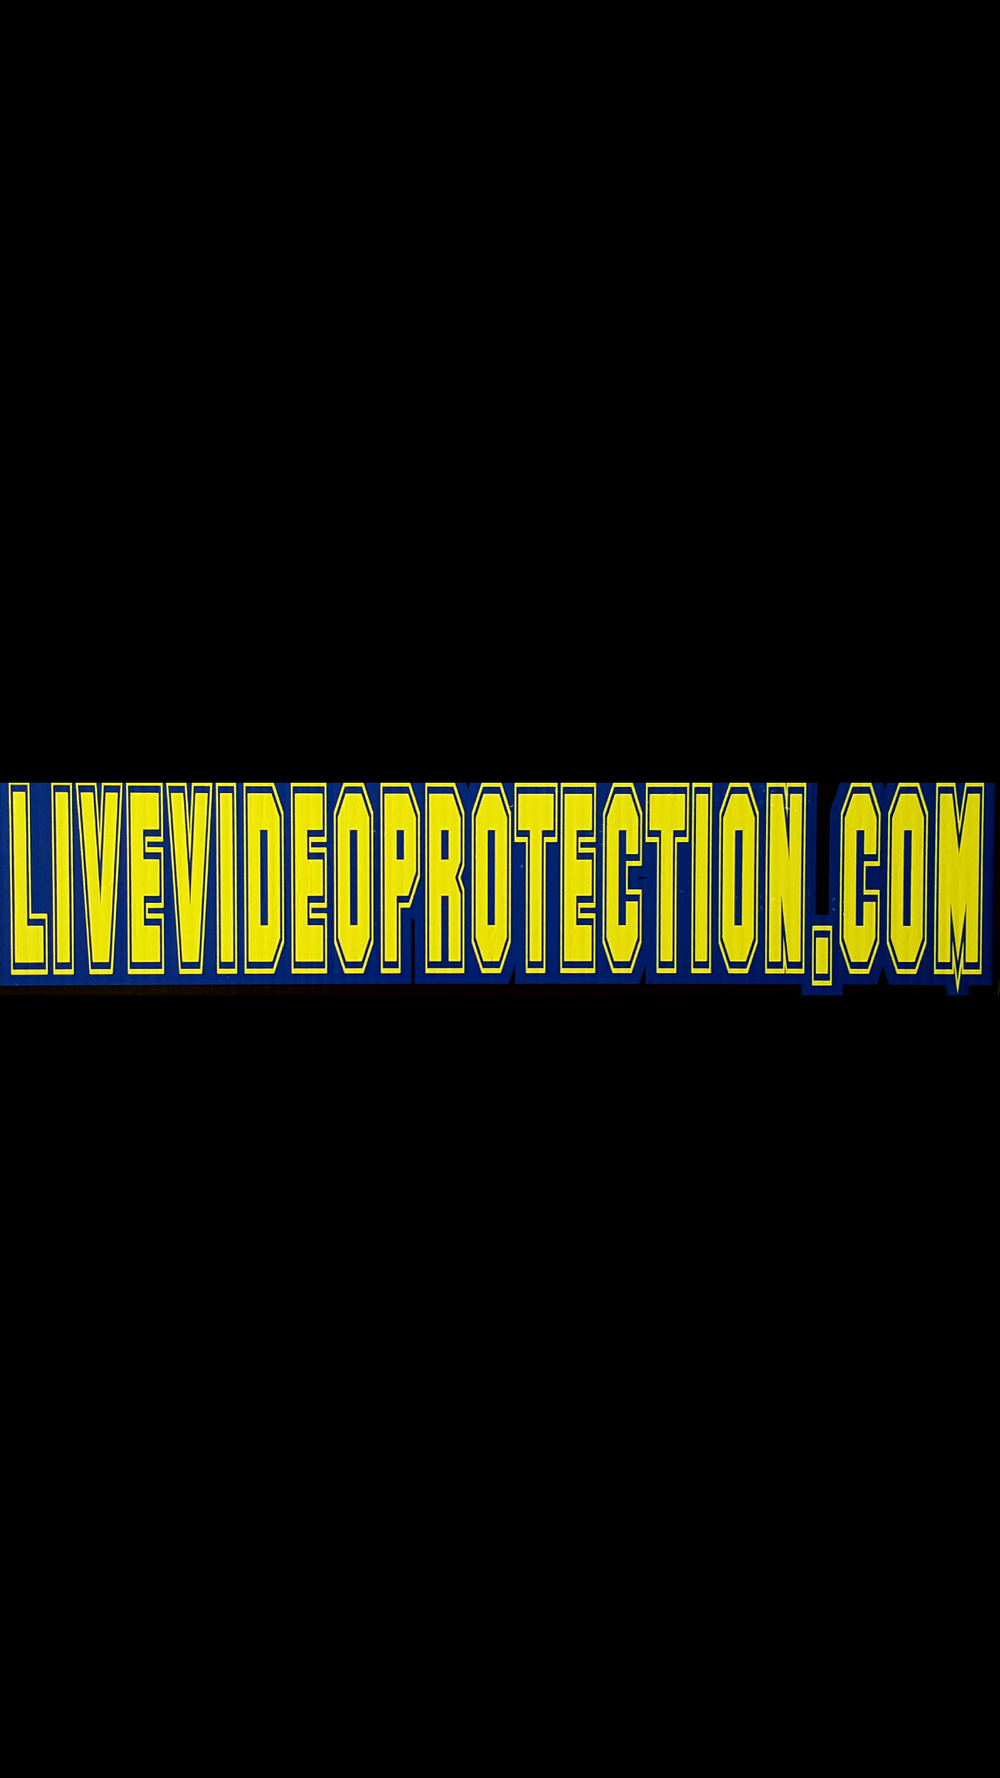 LIVEVIDEOPROTECTION.COM